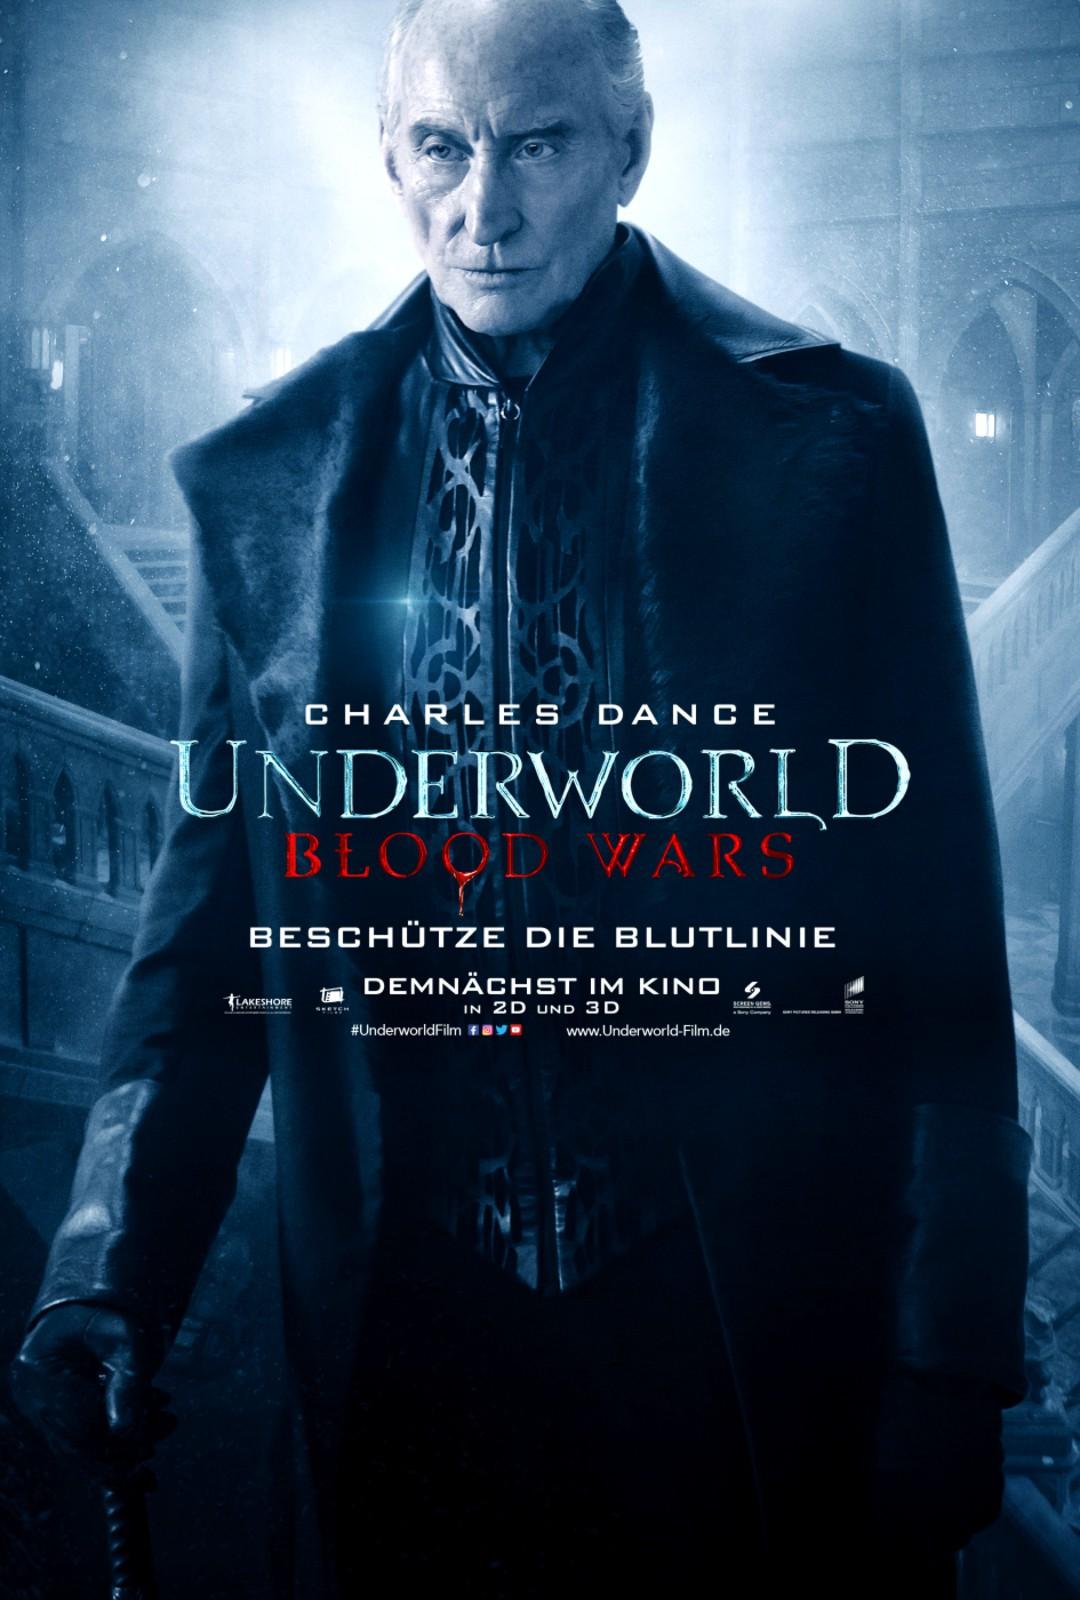 Underworld 5 Blood Wars: 3. deutscher Trailer - Bild 4 von 7